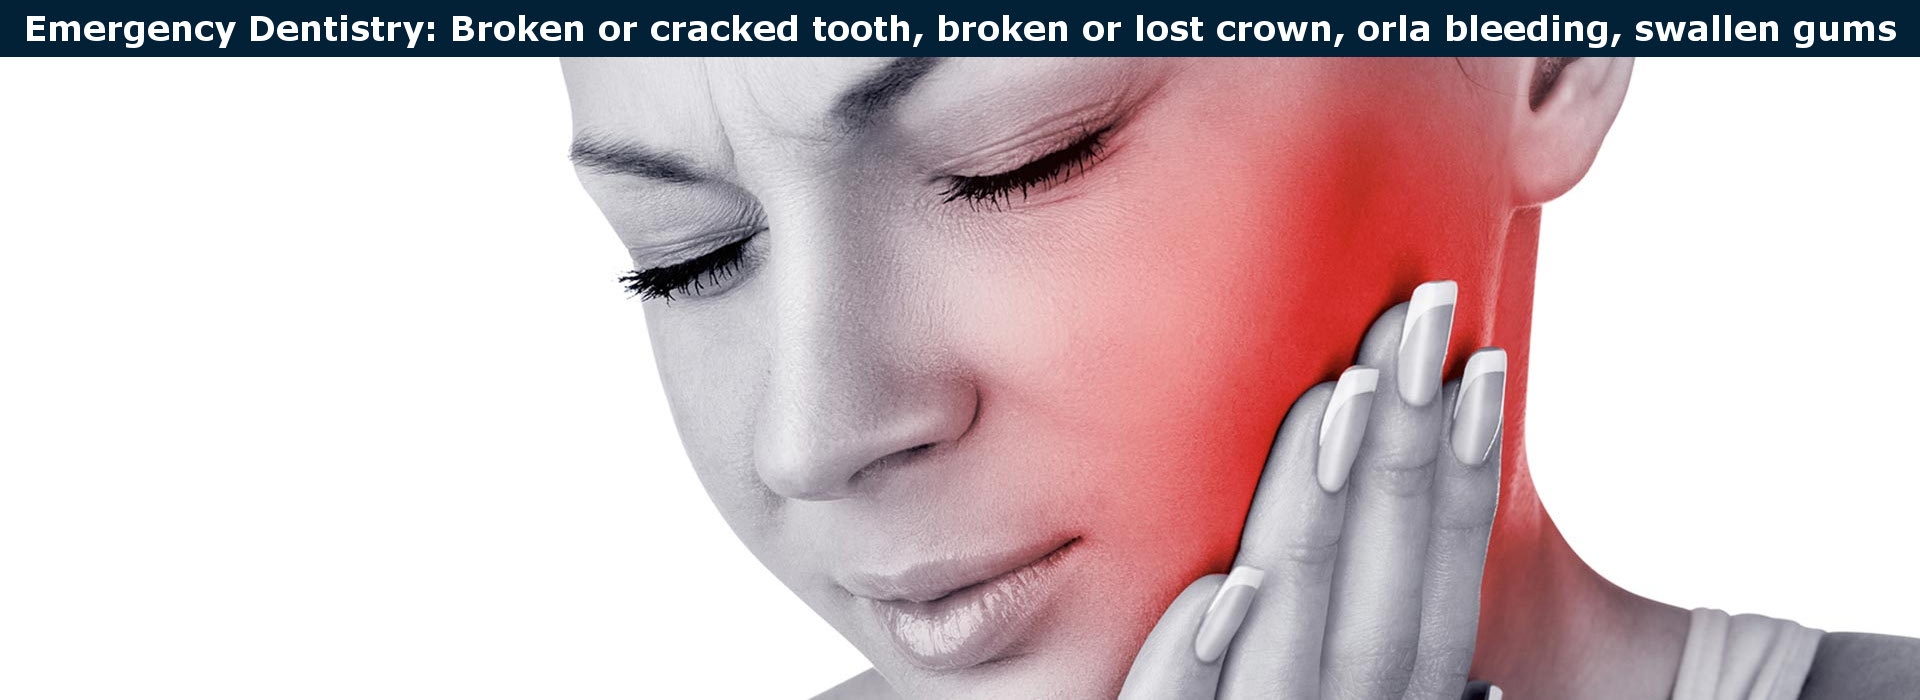 Emergency dentistry: broken tooth, broken, crown., etc.